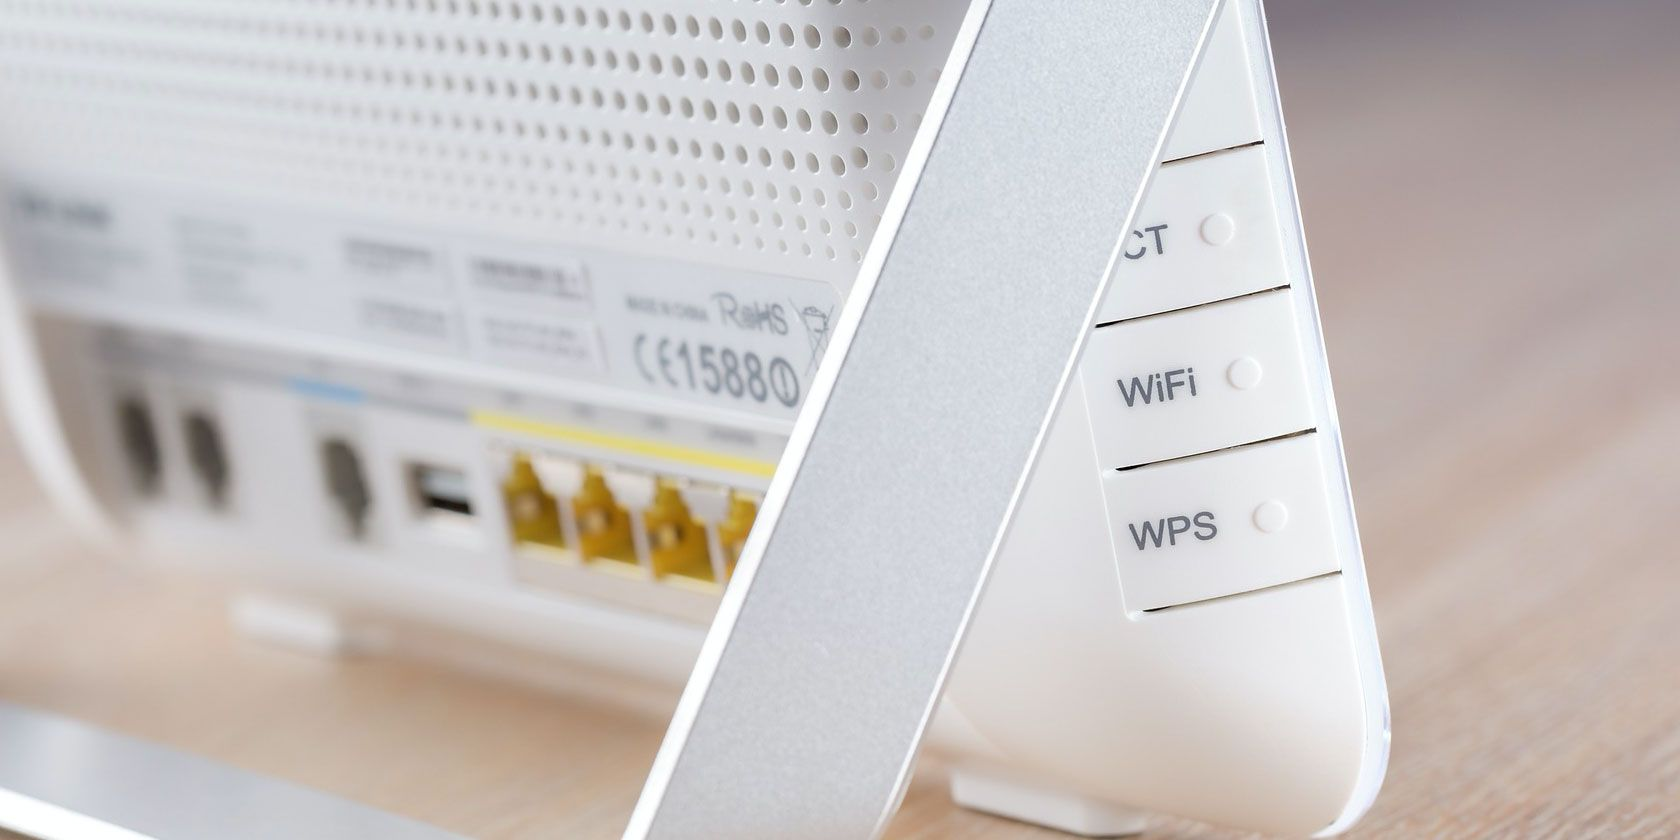 How to Fix a Slow or Unstable Wi-Fi Connection